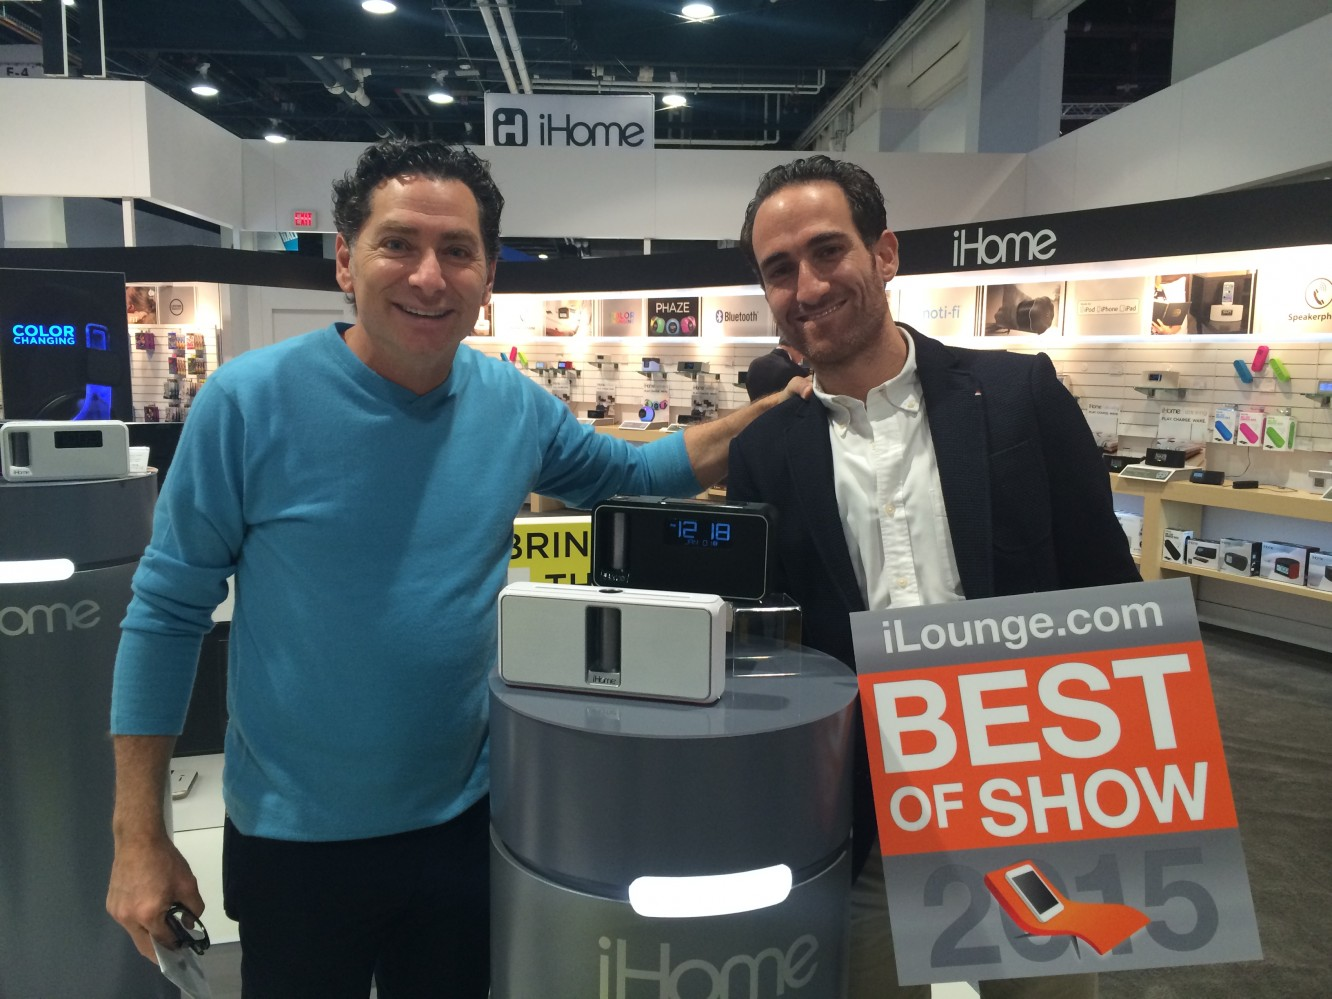 iLounge announces its CES 2015 Best of Show Awards 3